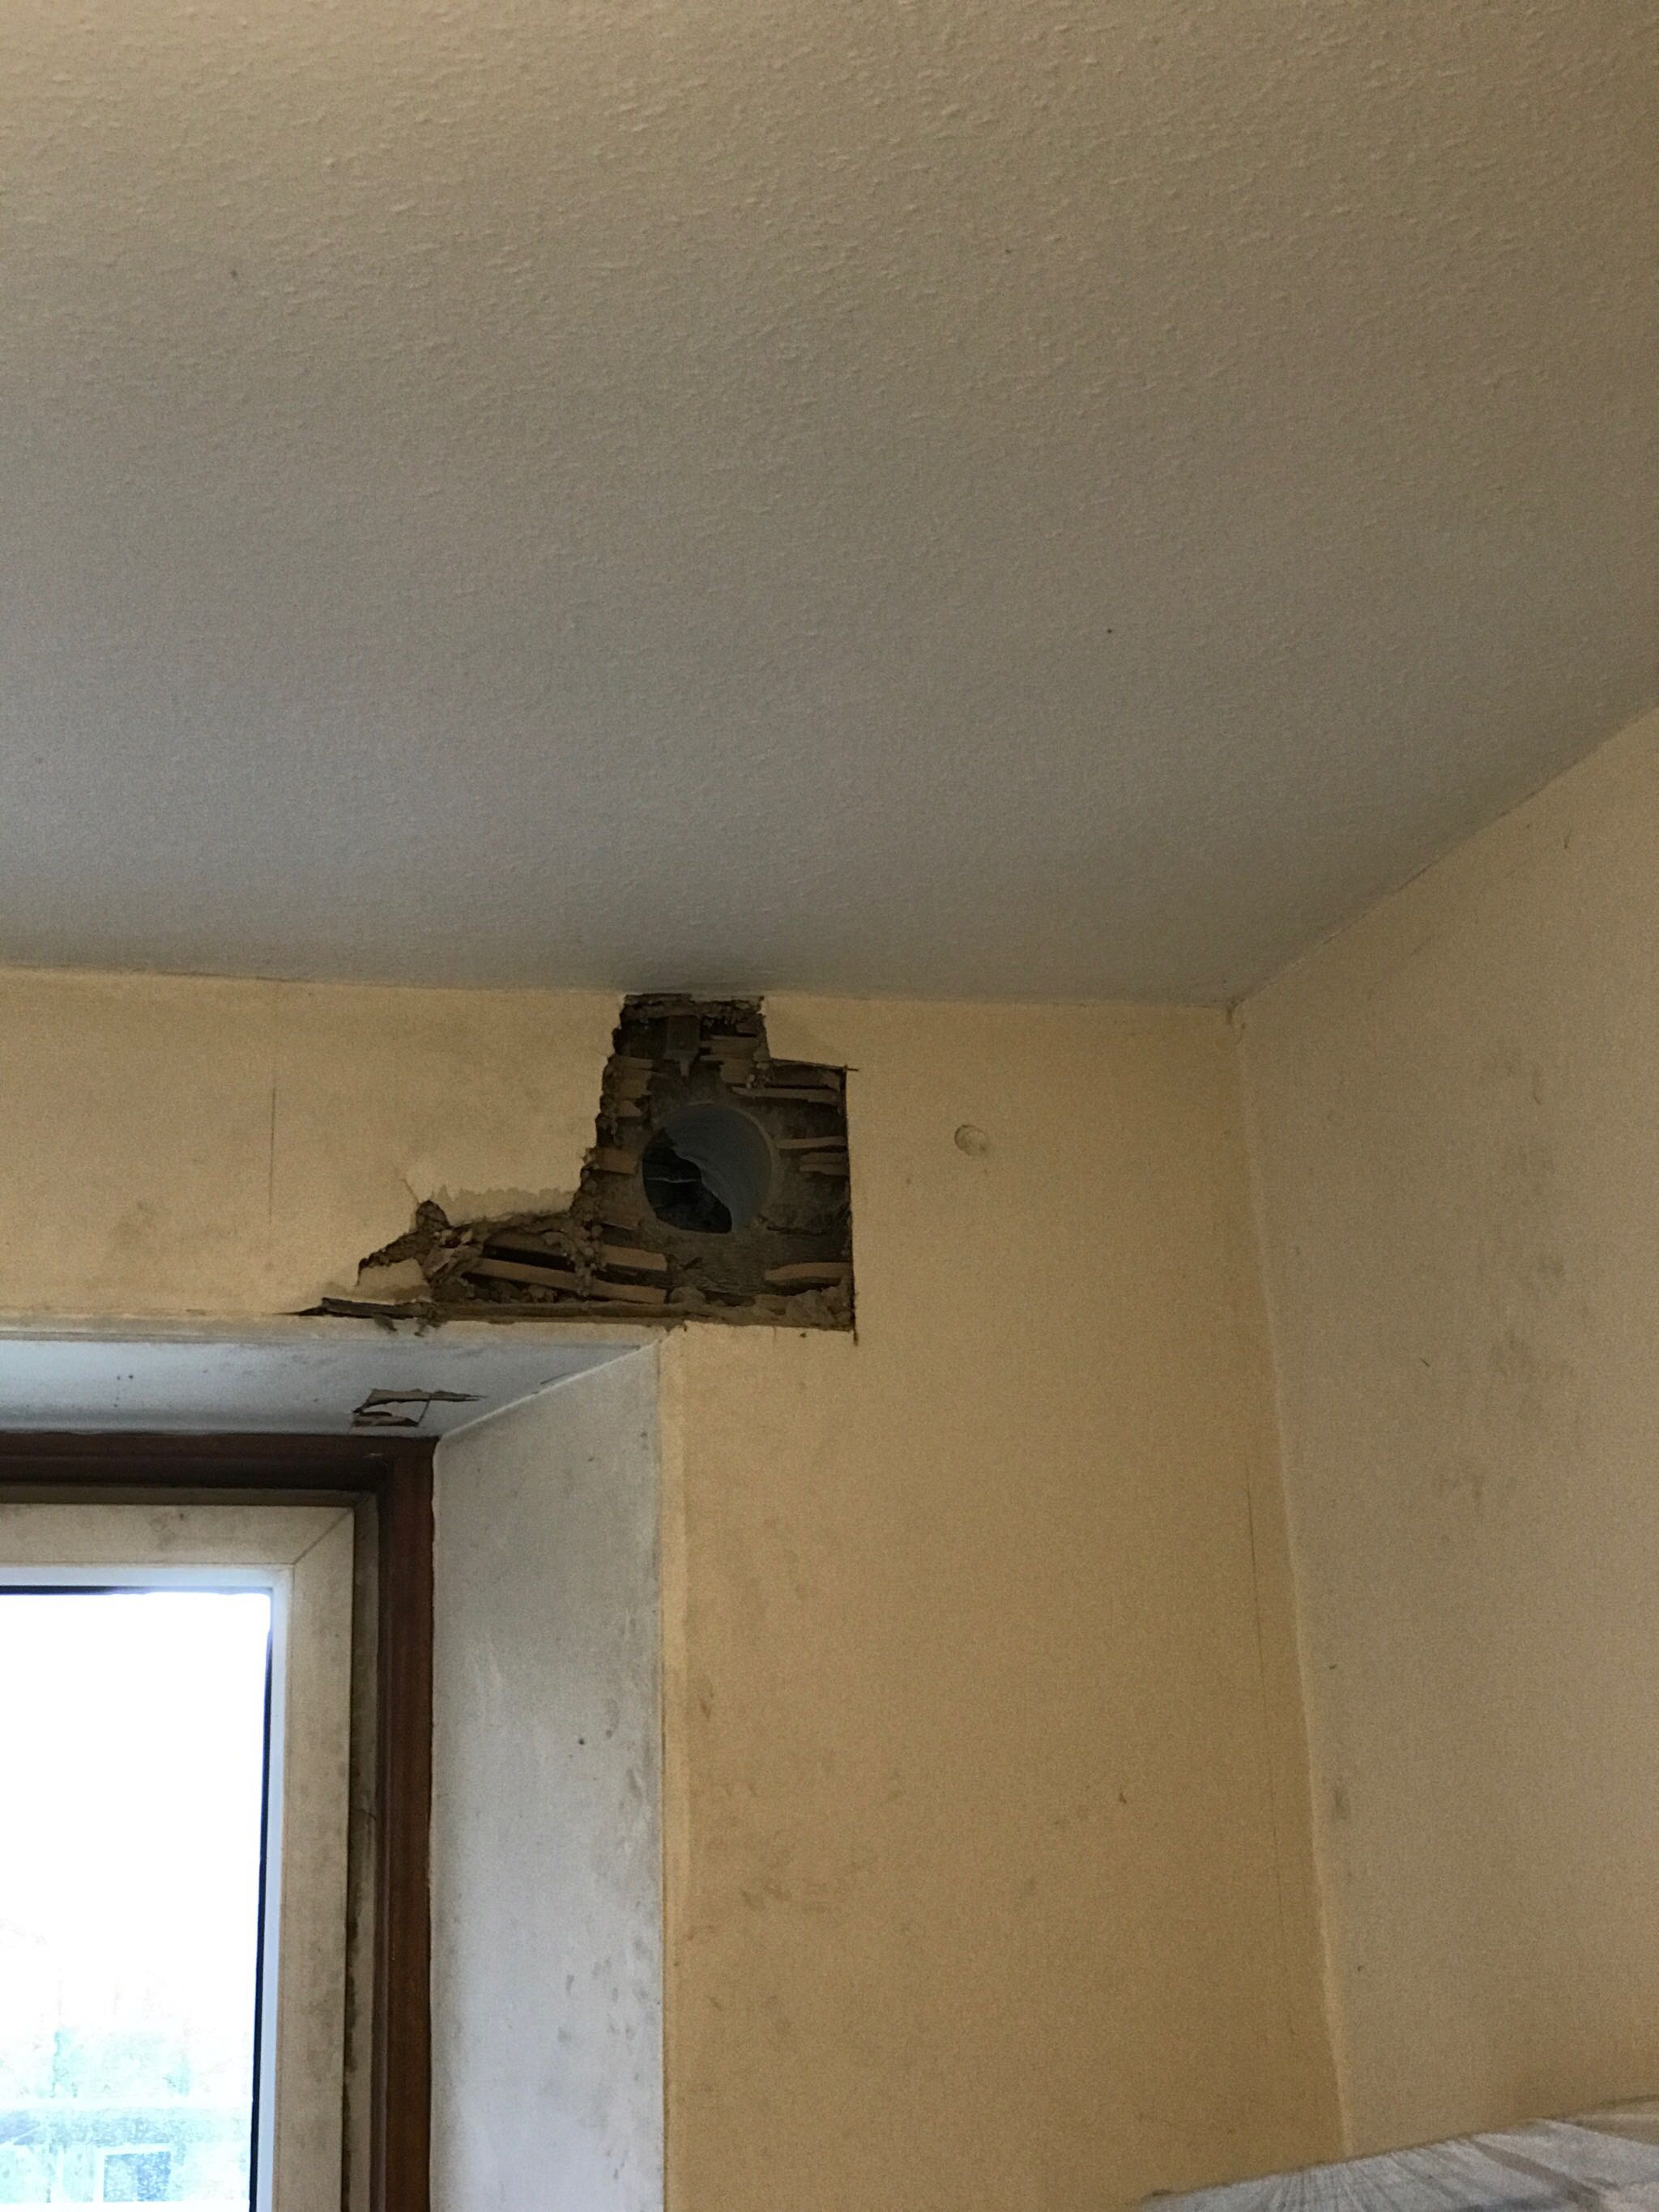 Hole for a flue, in the wrong place